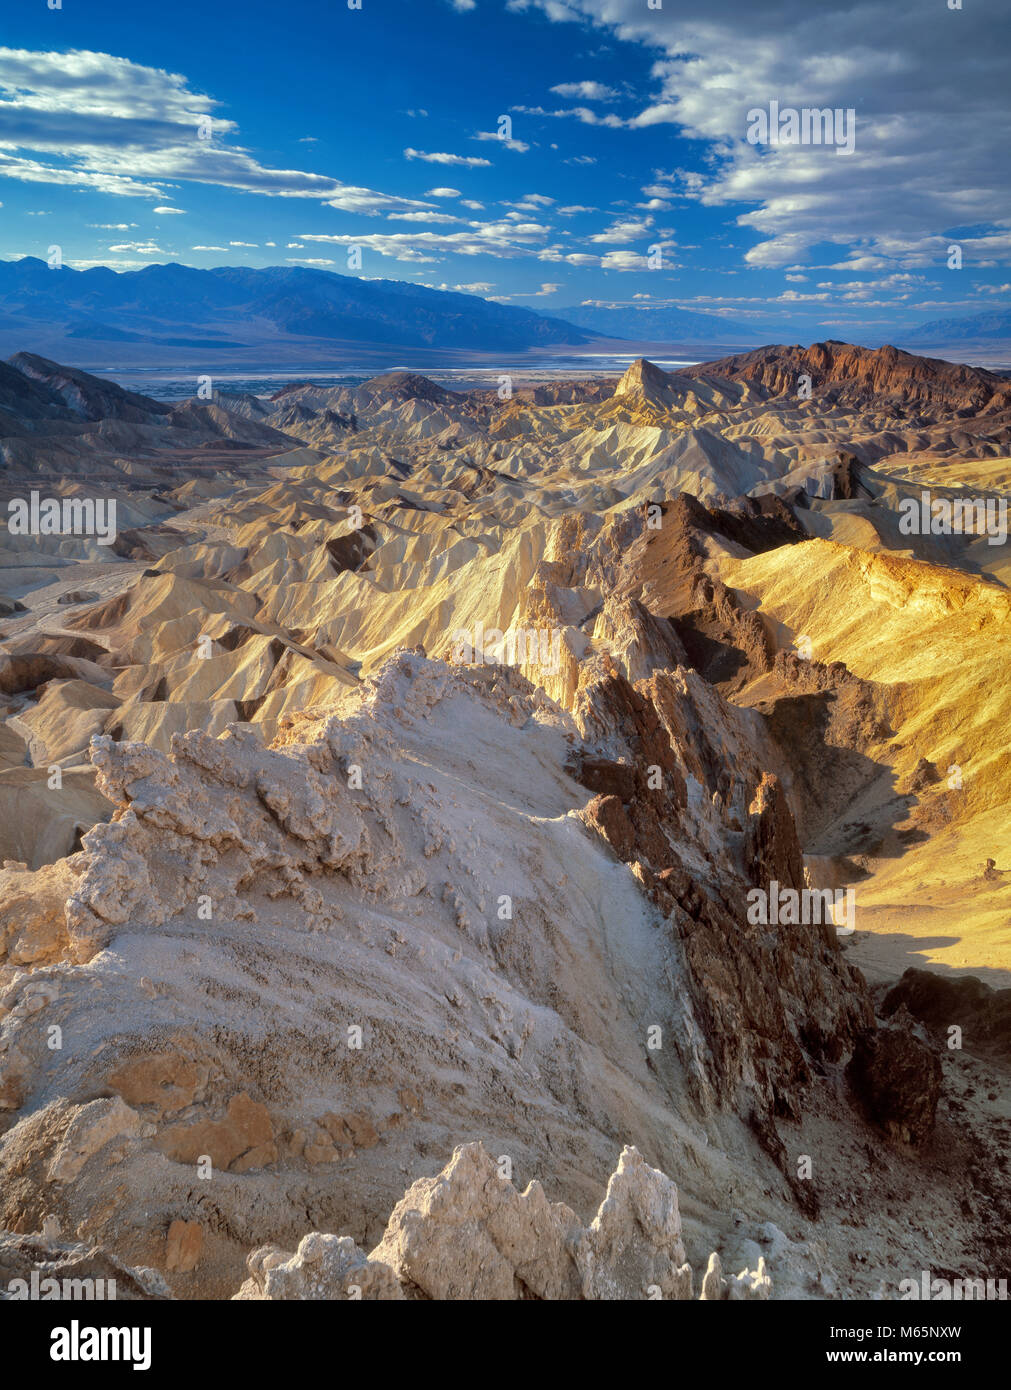 Golden Canyon, Manly Beacon, Death Valley National Park, California - Stock Image